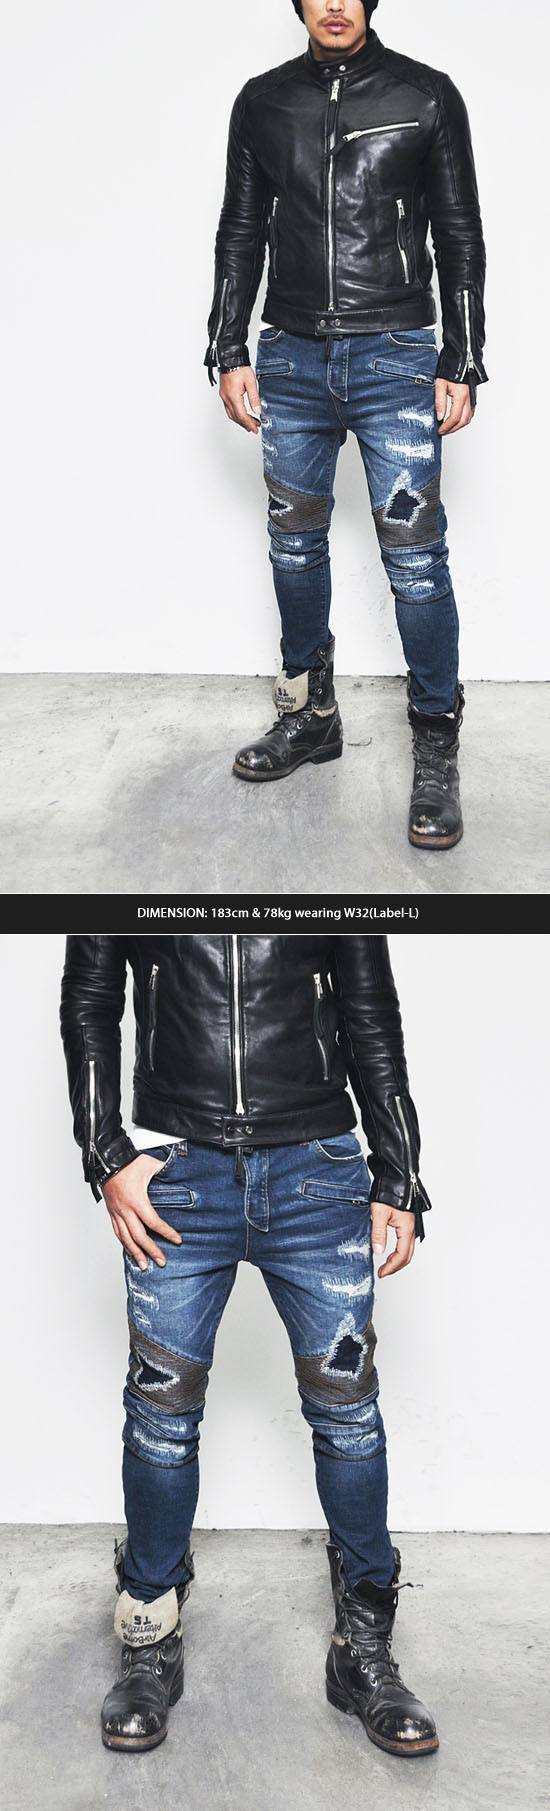 Funky Jeans with Leather Jackets